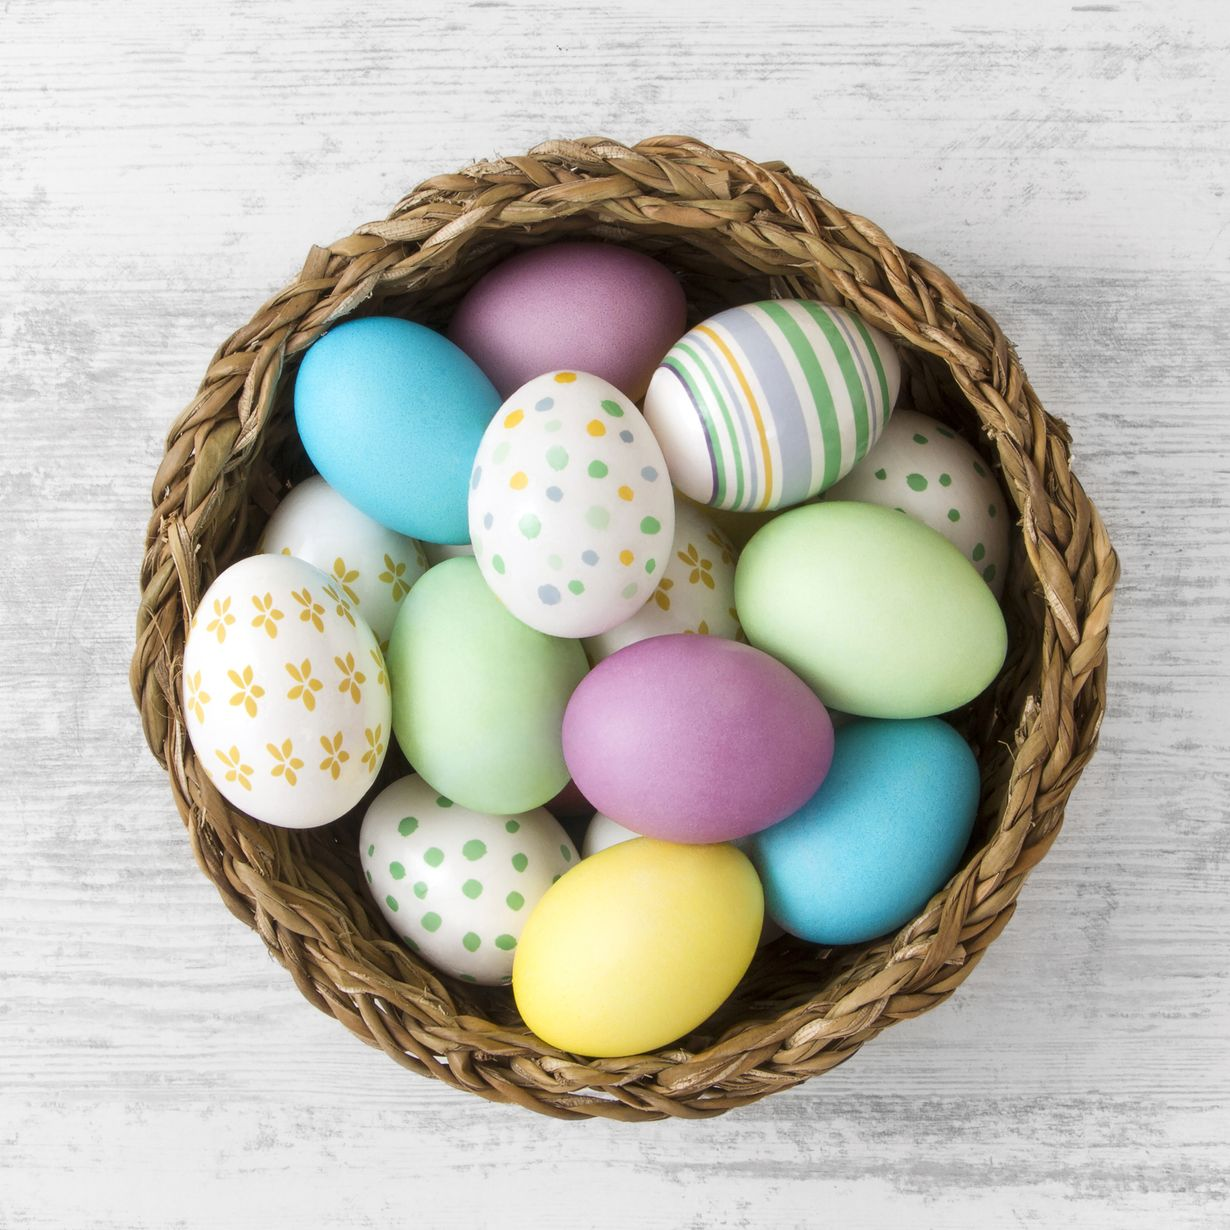 Why You Probably Shouldn't Eat Your Dyed Easter Eggs